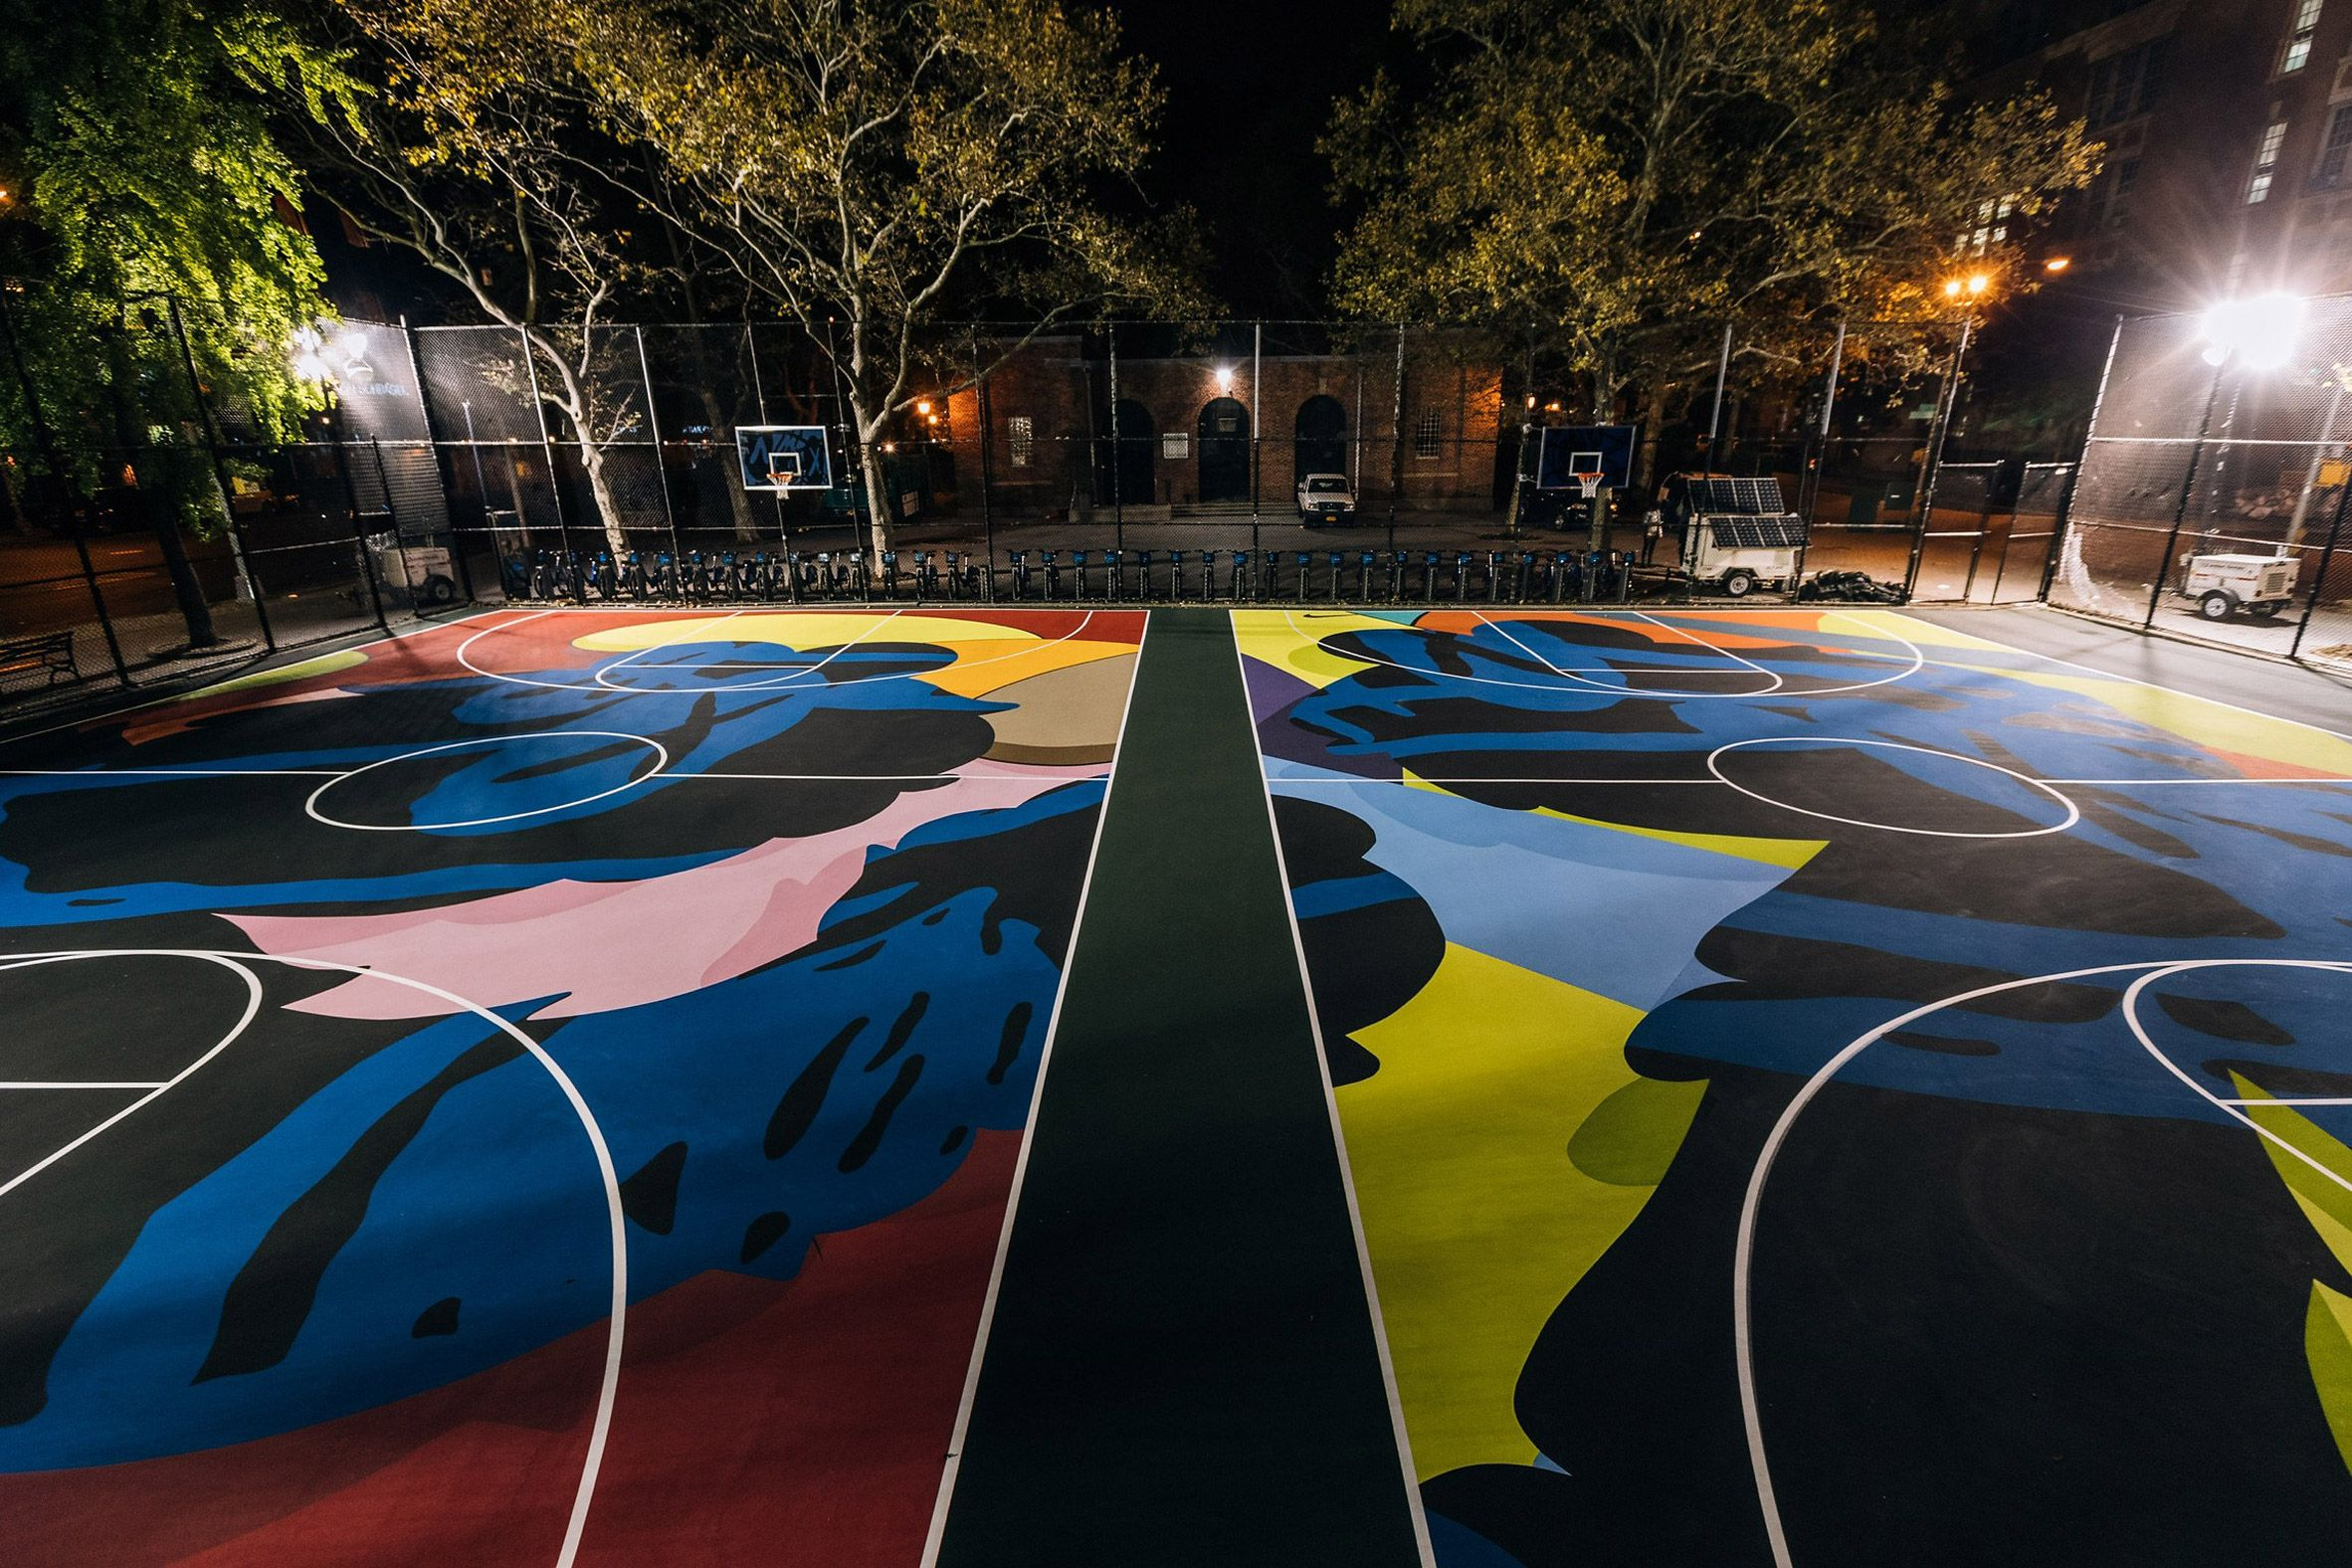 Nike Has Enlisted Brooklyn Based Artist Kaws To Paint His Signature Motifs Across Two Basketball Courts New York Basketball Installation Art Street Basketball